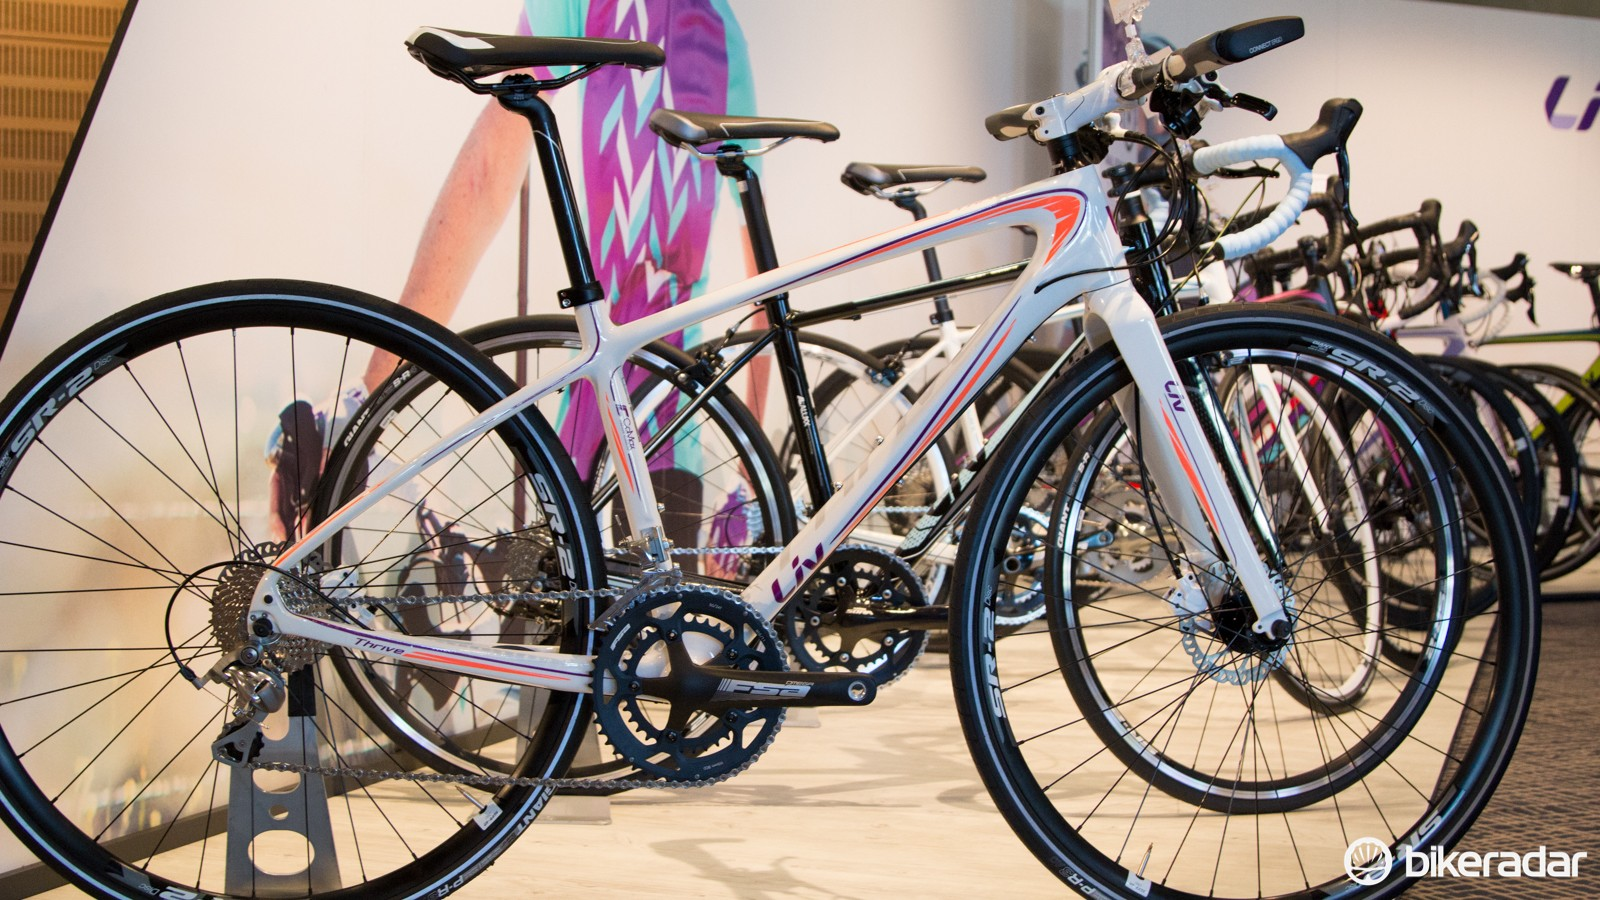 The Thrive CoMax 2 Disc (US$1500 / AU$1,599 / £TBA) is a new carbon composite flat-bar road bike. While an Avail or Envie will still be more efficient (faster), the Thrive range is better suited to commuting or general fitness riding